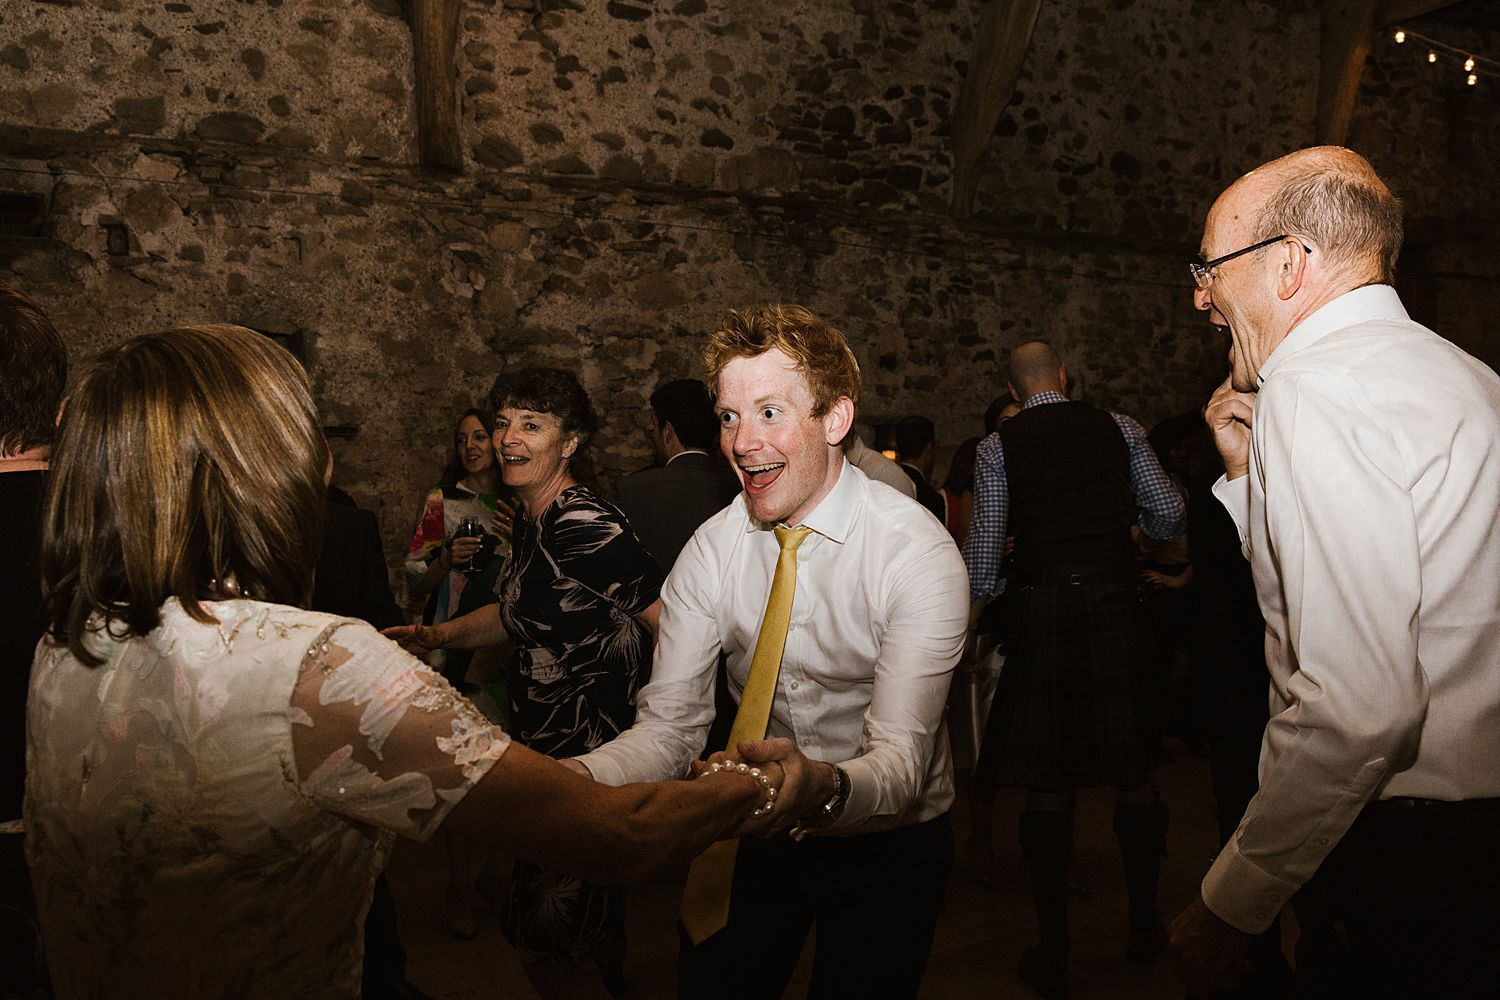 Dancing at eveneing reception, Park House Barn wedding